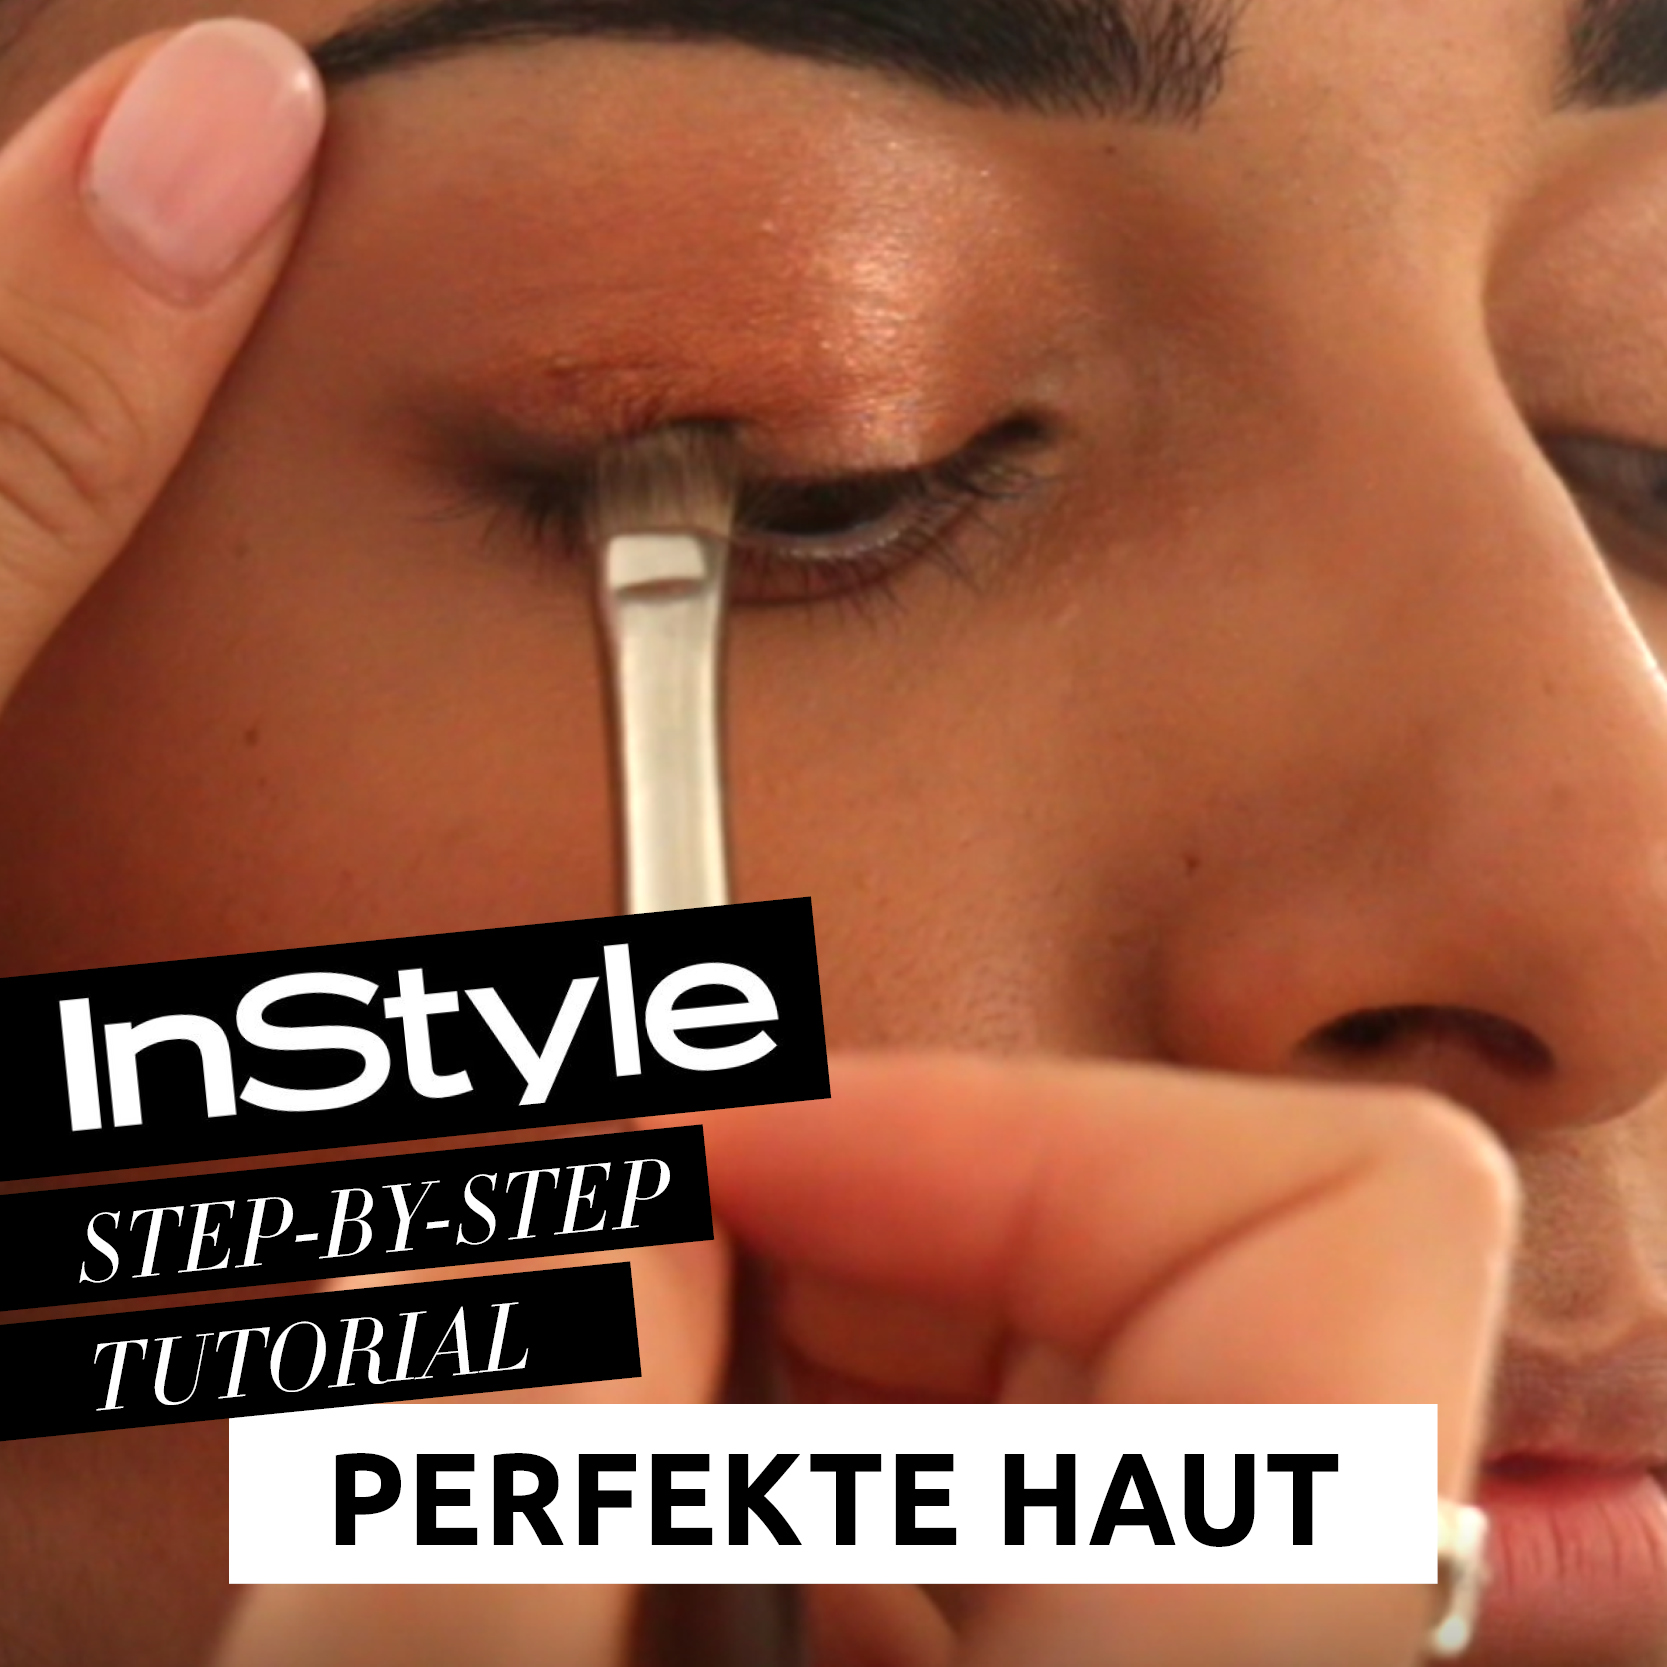 InStyle Video Tutorial: Perfekte Haut